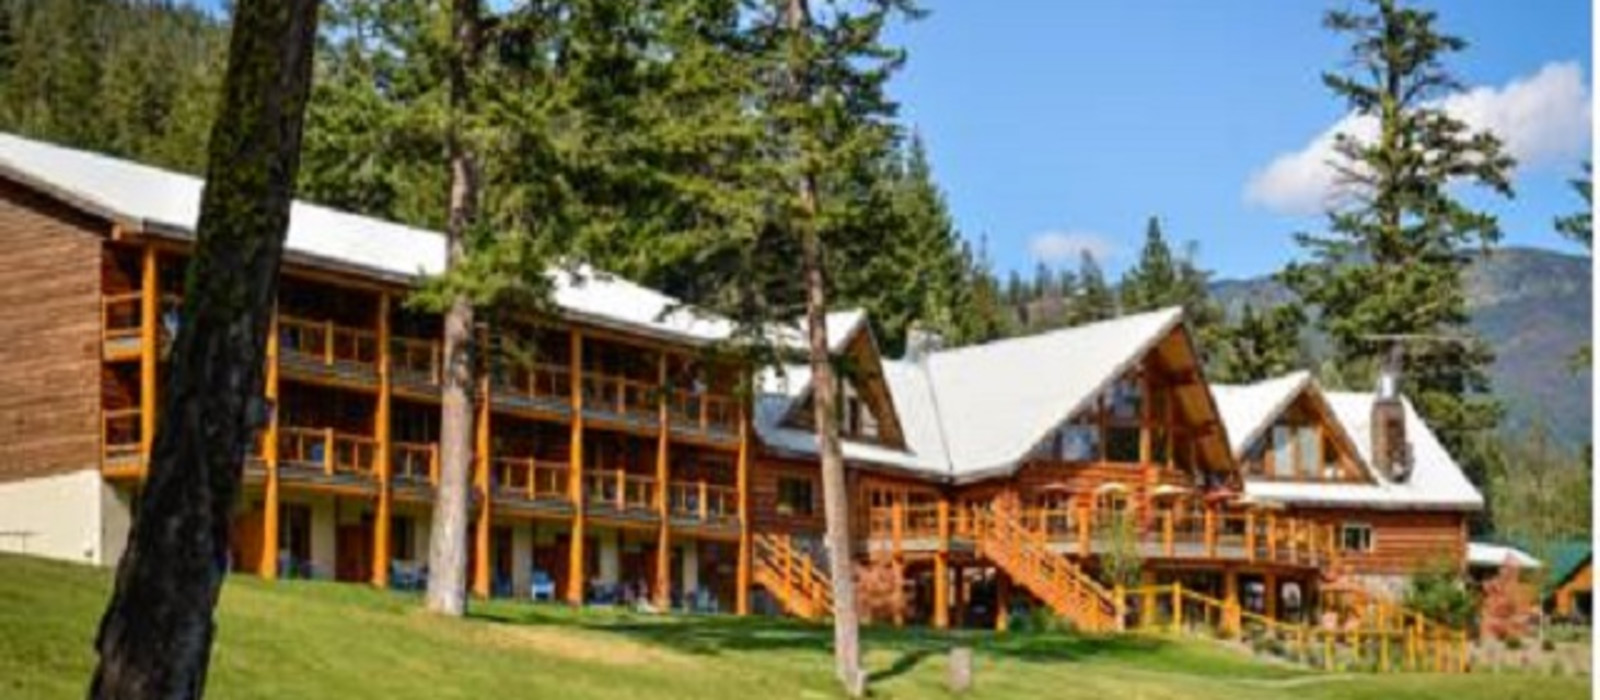 Hotel Tyax Wilderness Resort Kanada